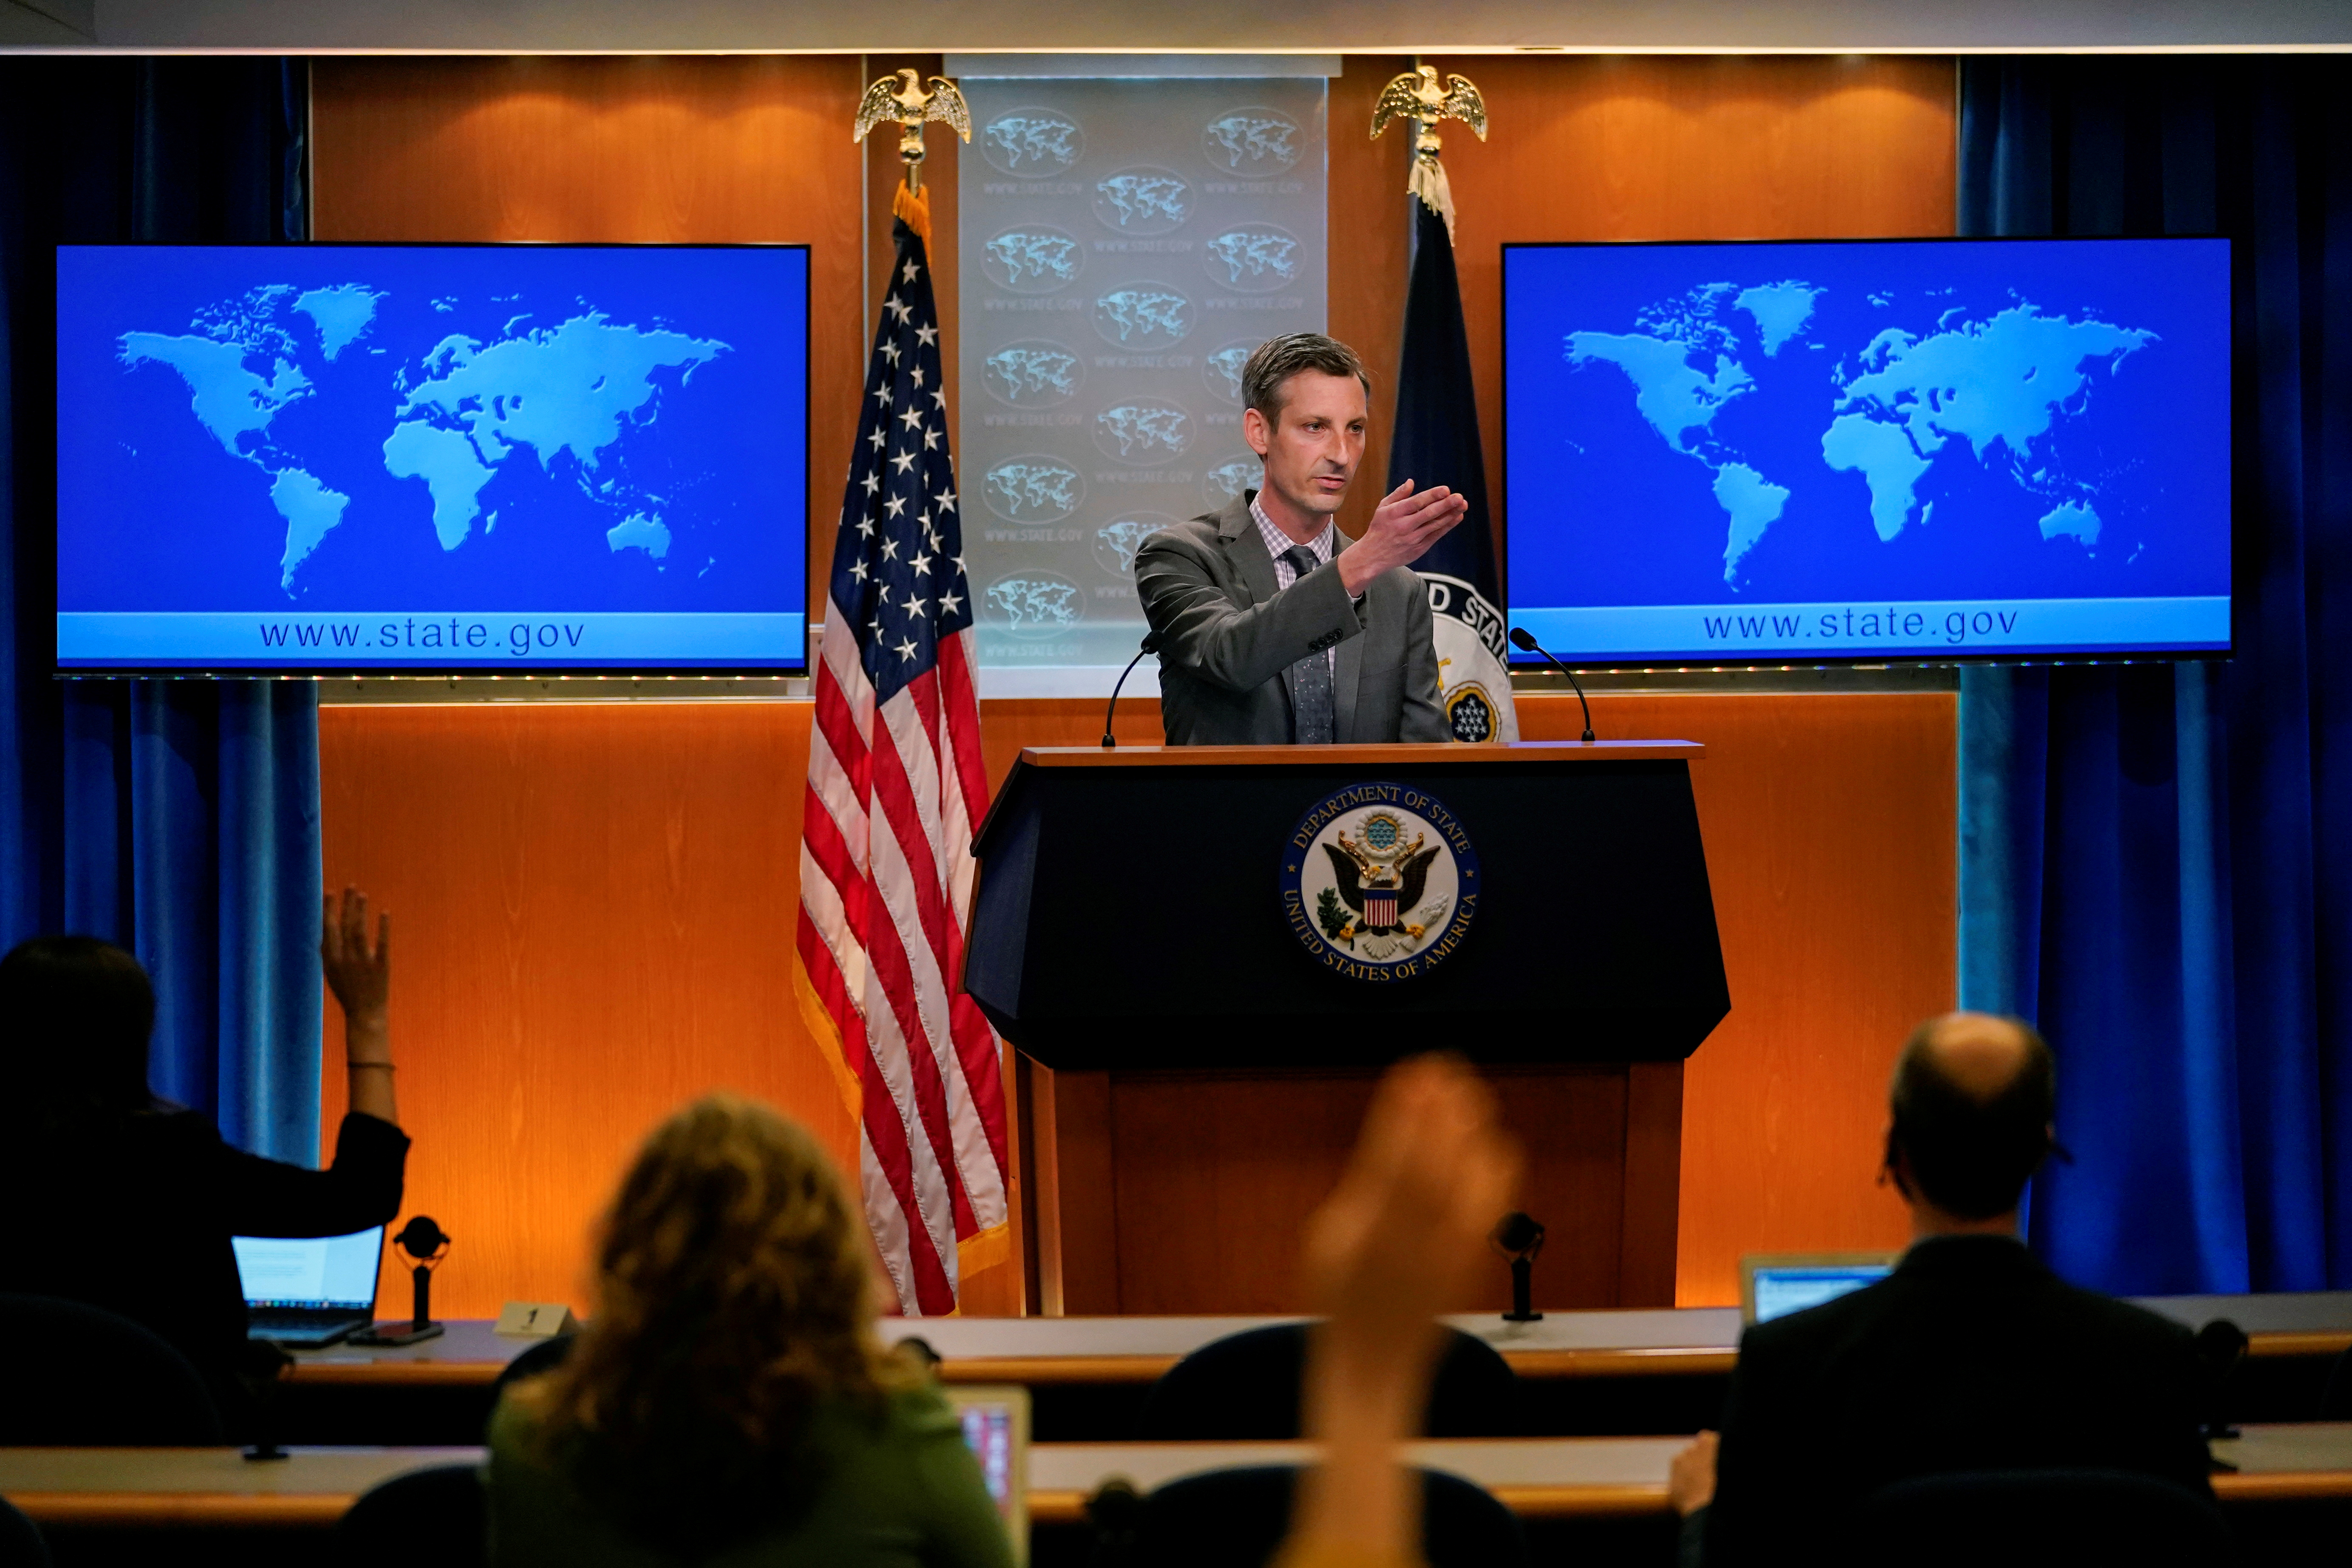 U.S. State Department spokesman Ned Price takes questions from reporters at the State Department in Washington, U.S., March 31, 2021. Carolyn Kaster/Pool via REUTERS